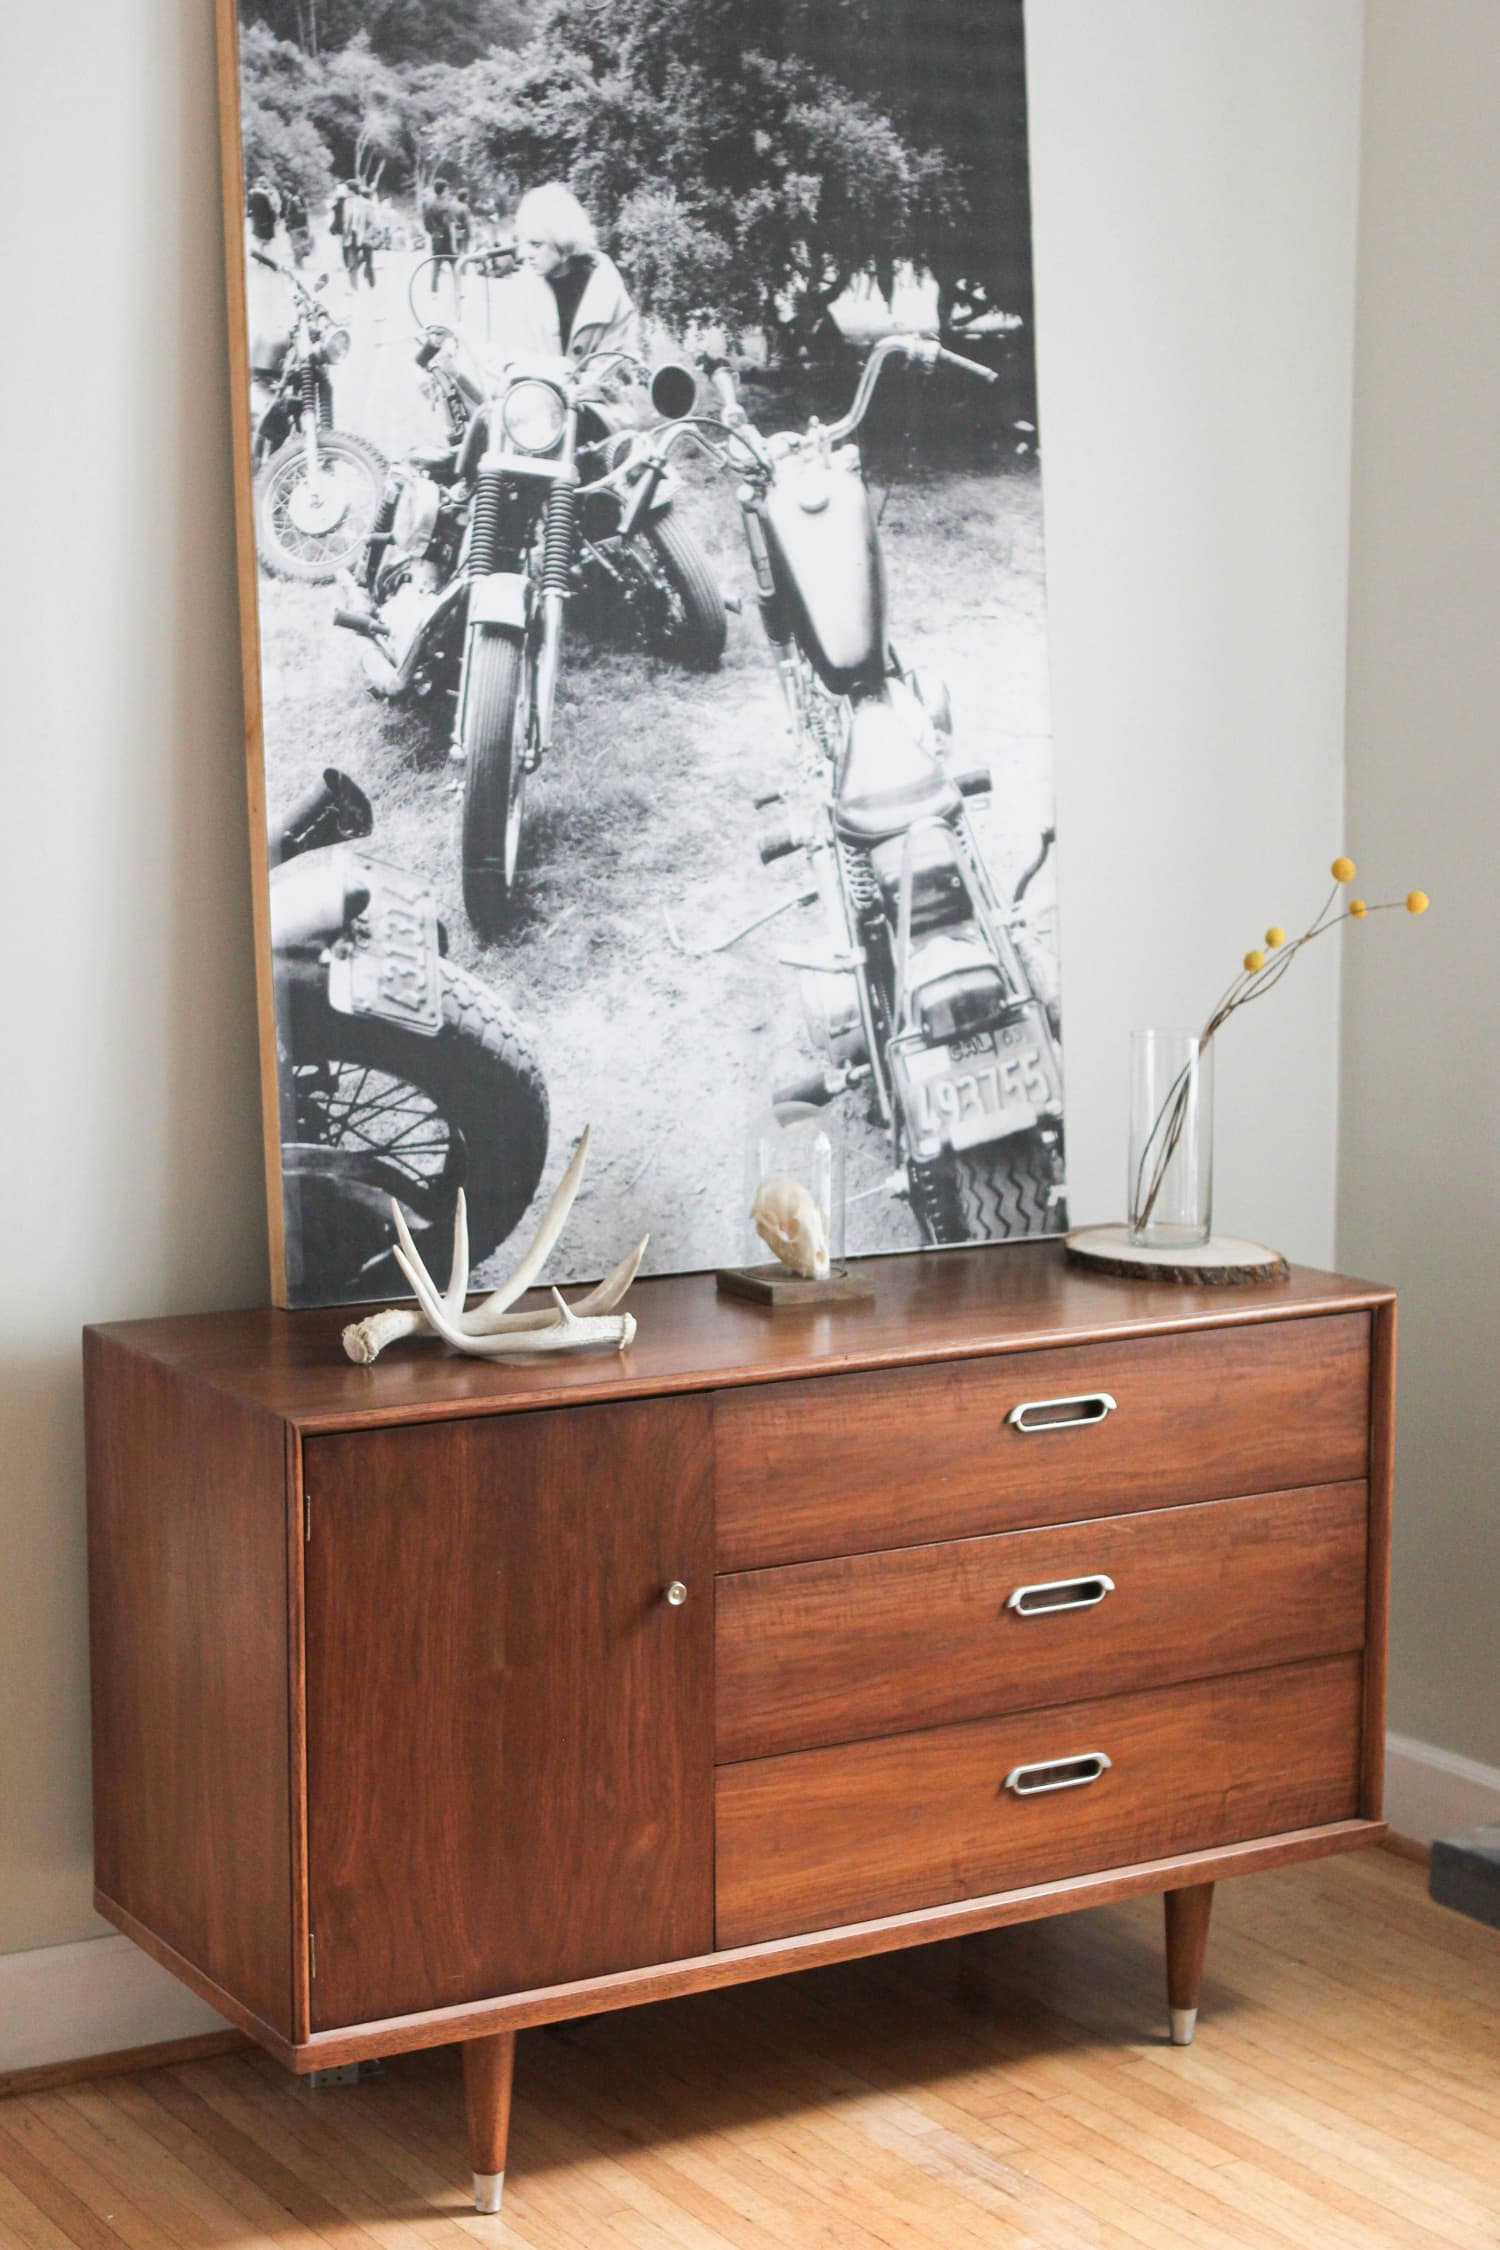 How To Strip and Refinish Wood Furniture